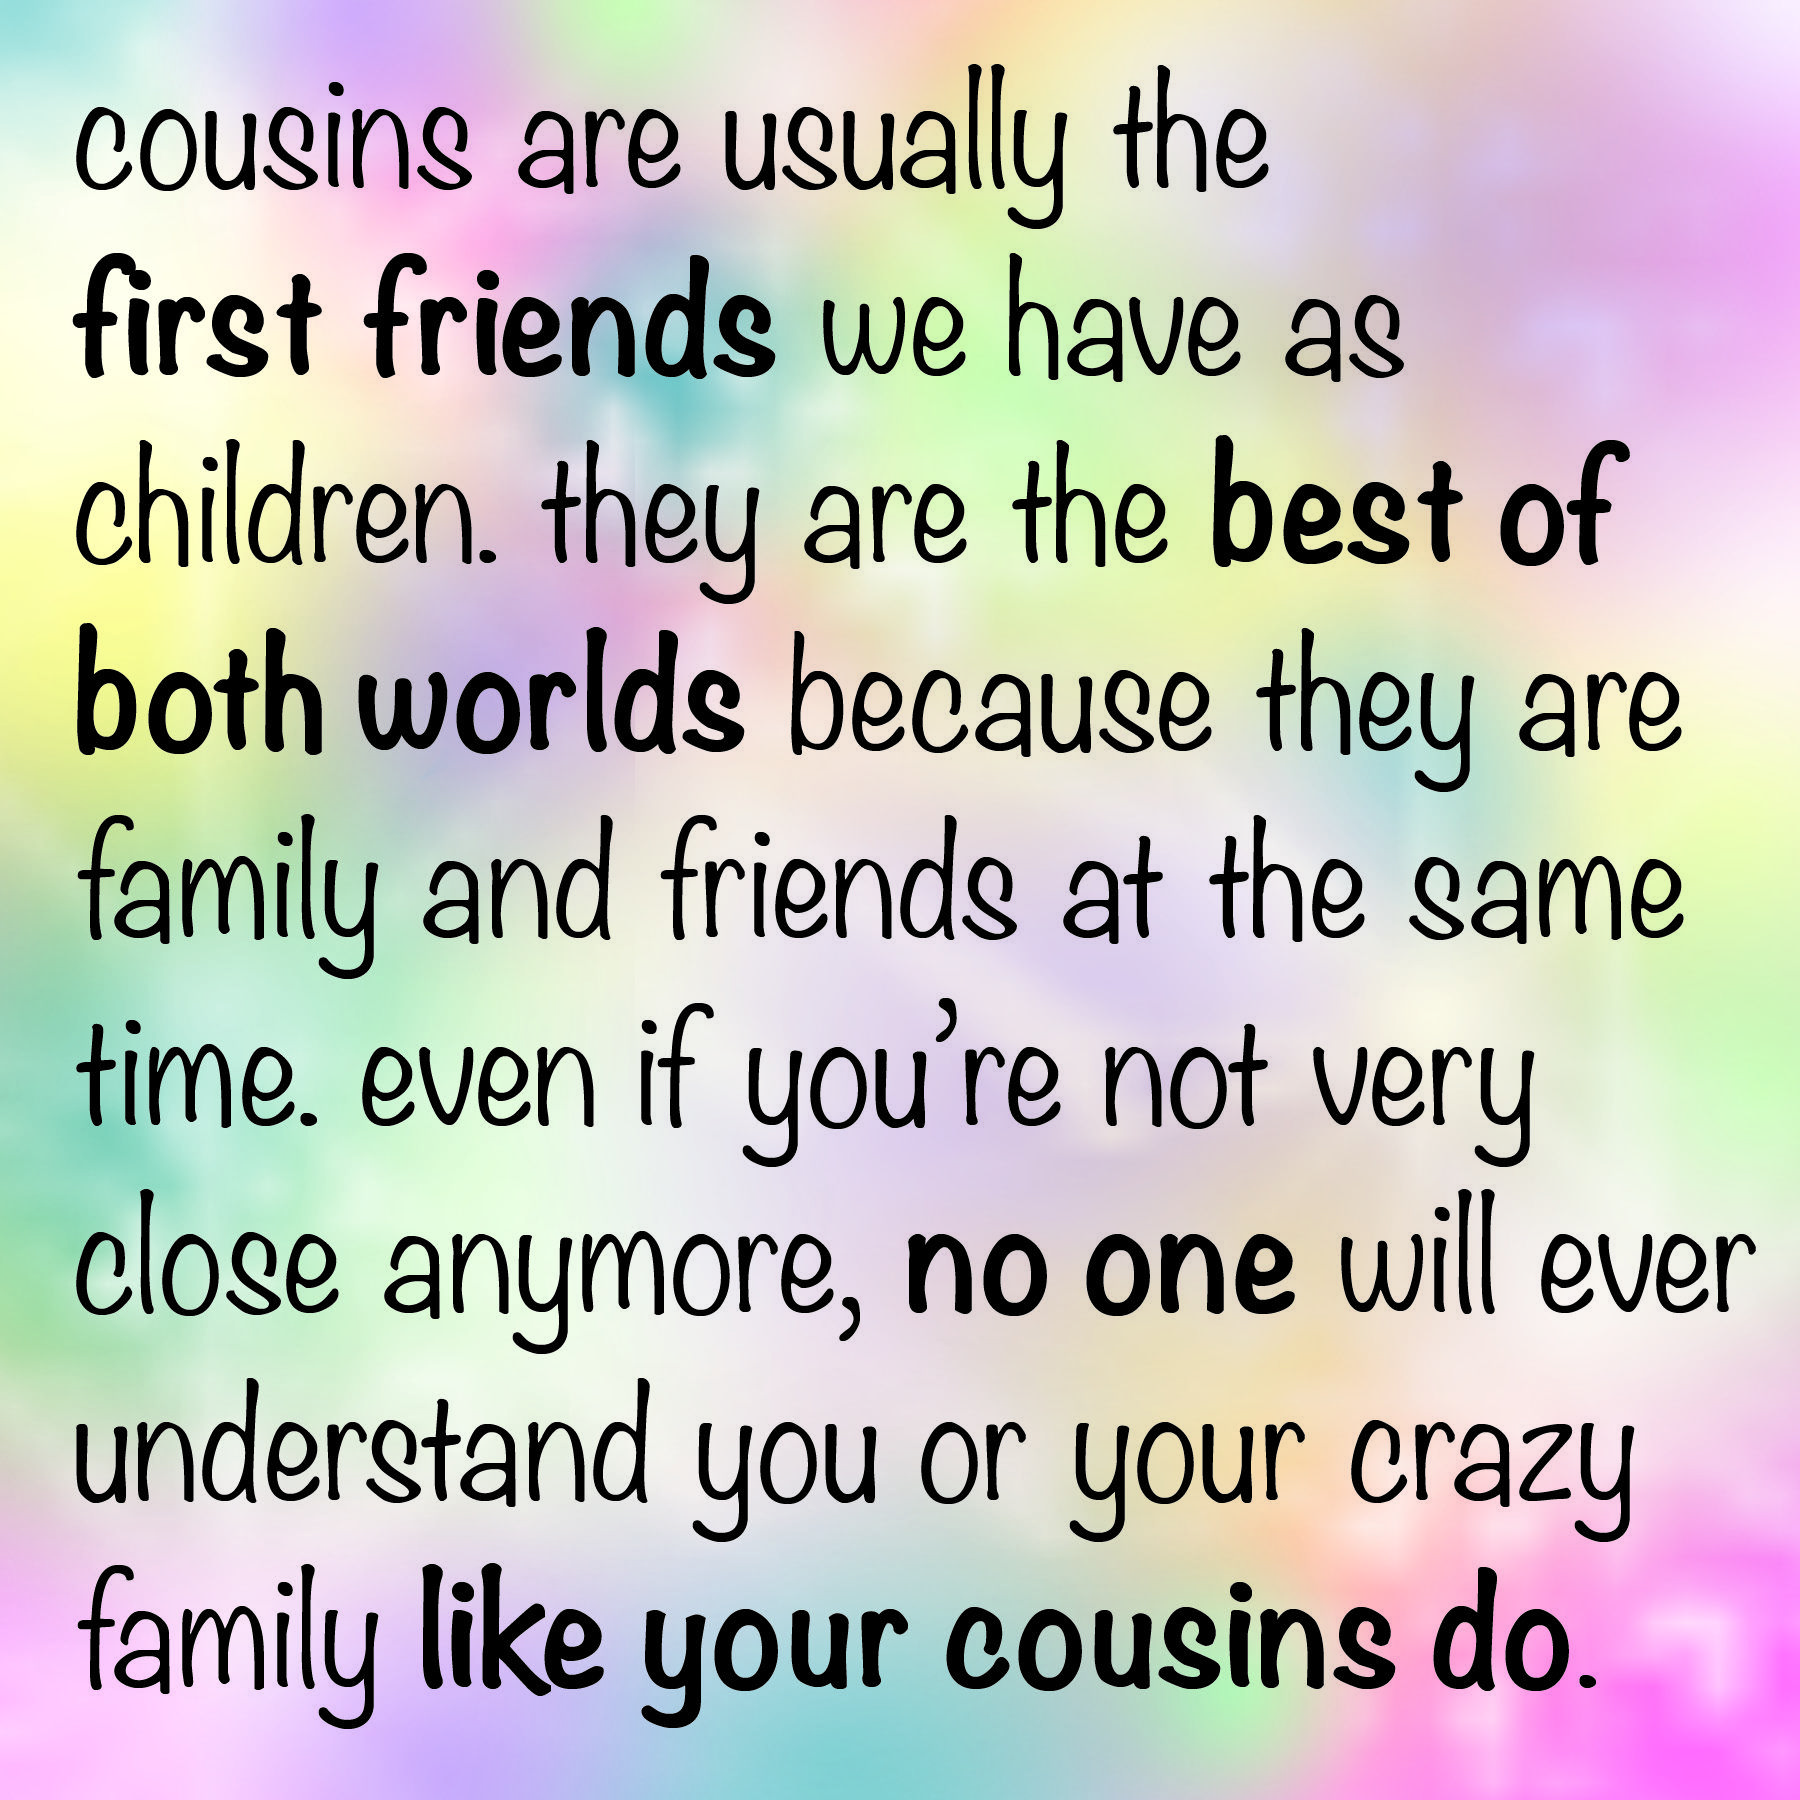 Quotes and Sayings About Cousins